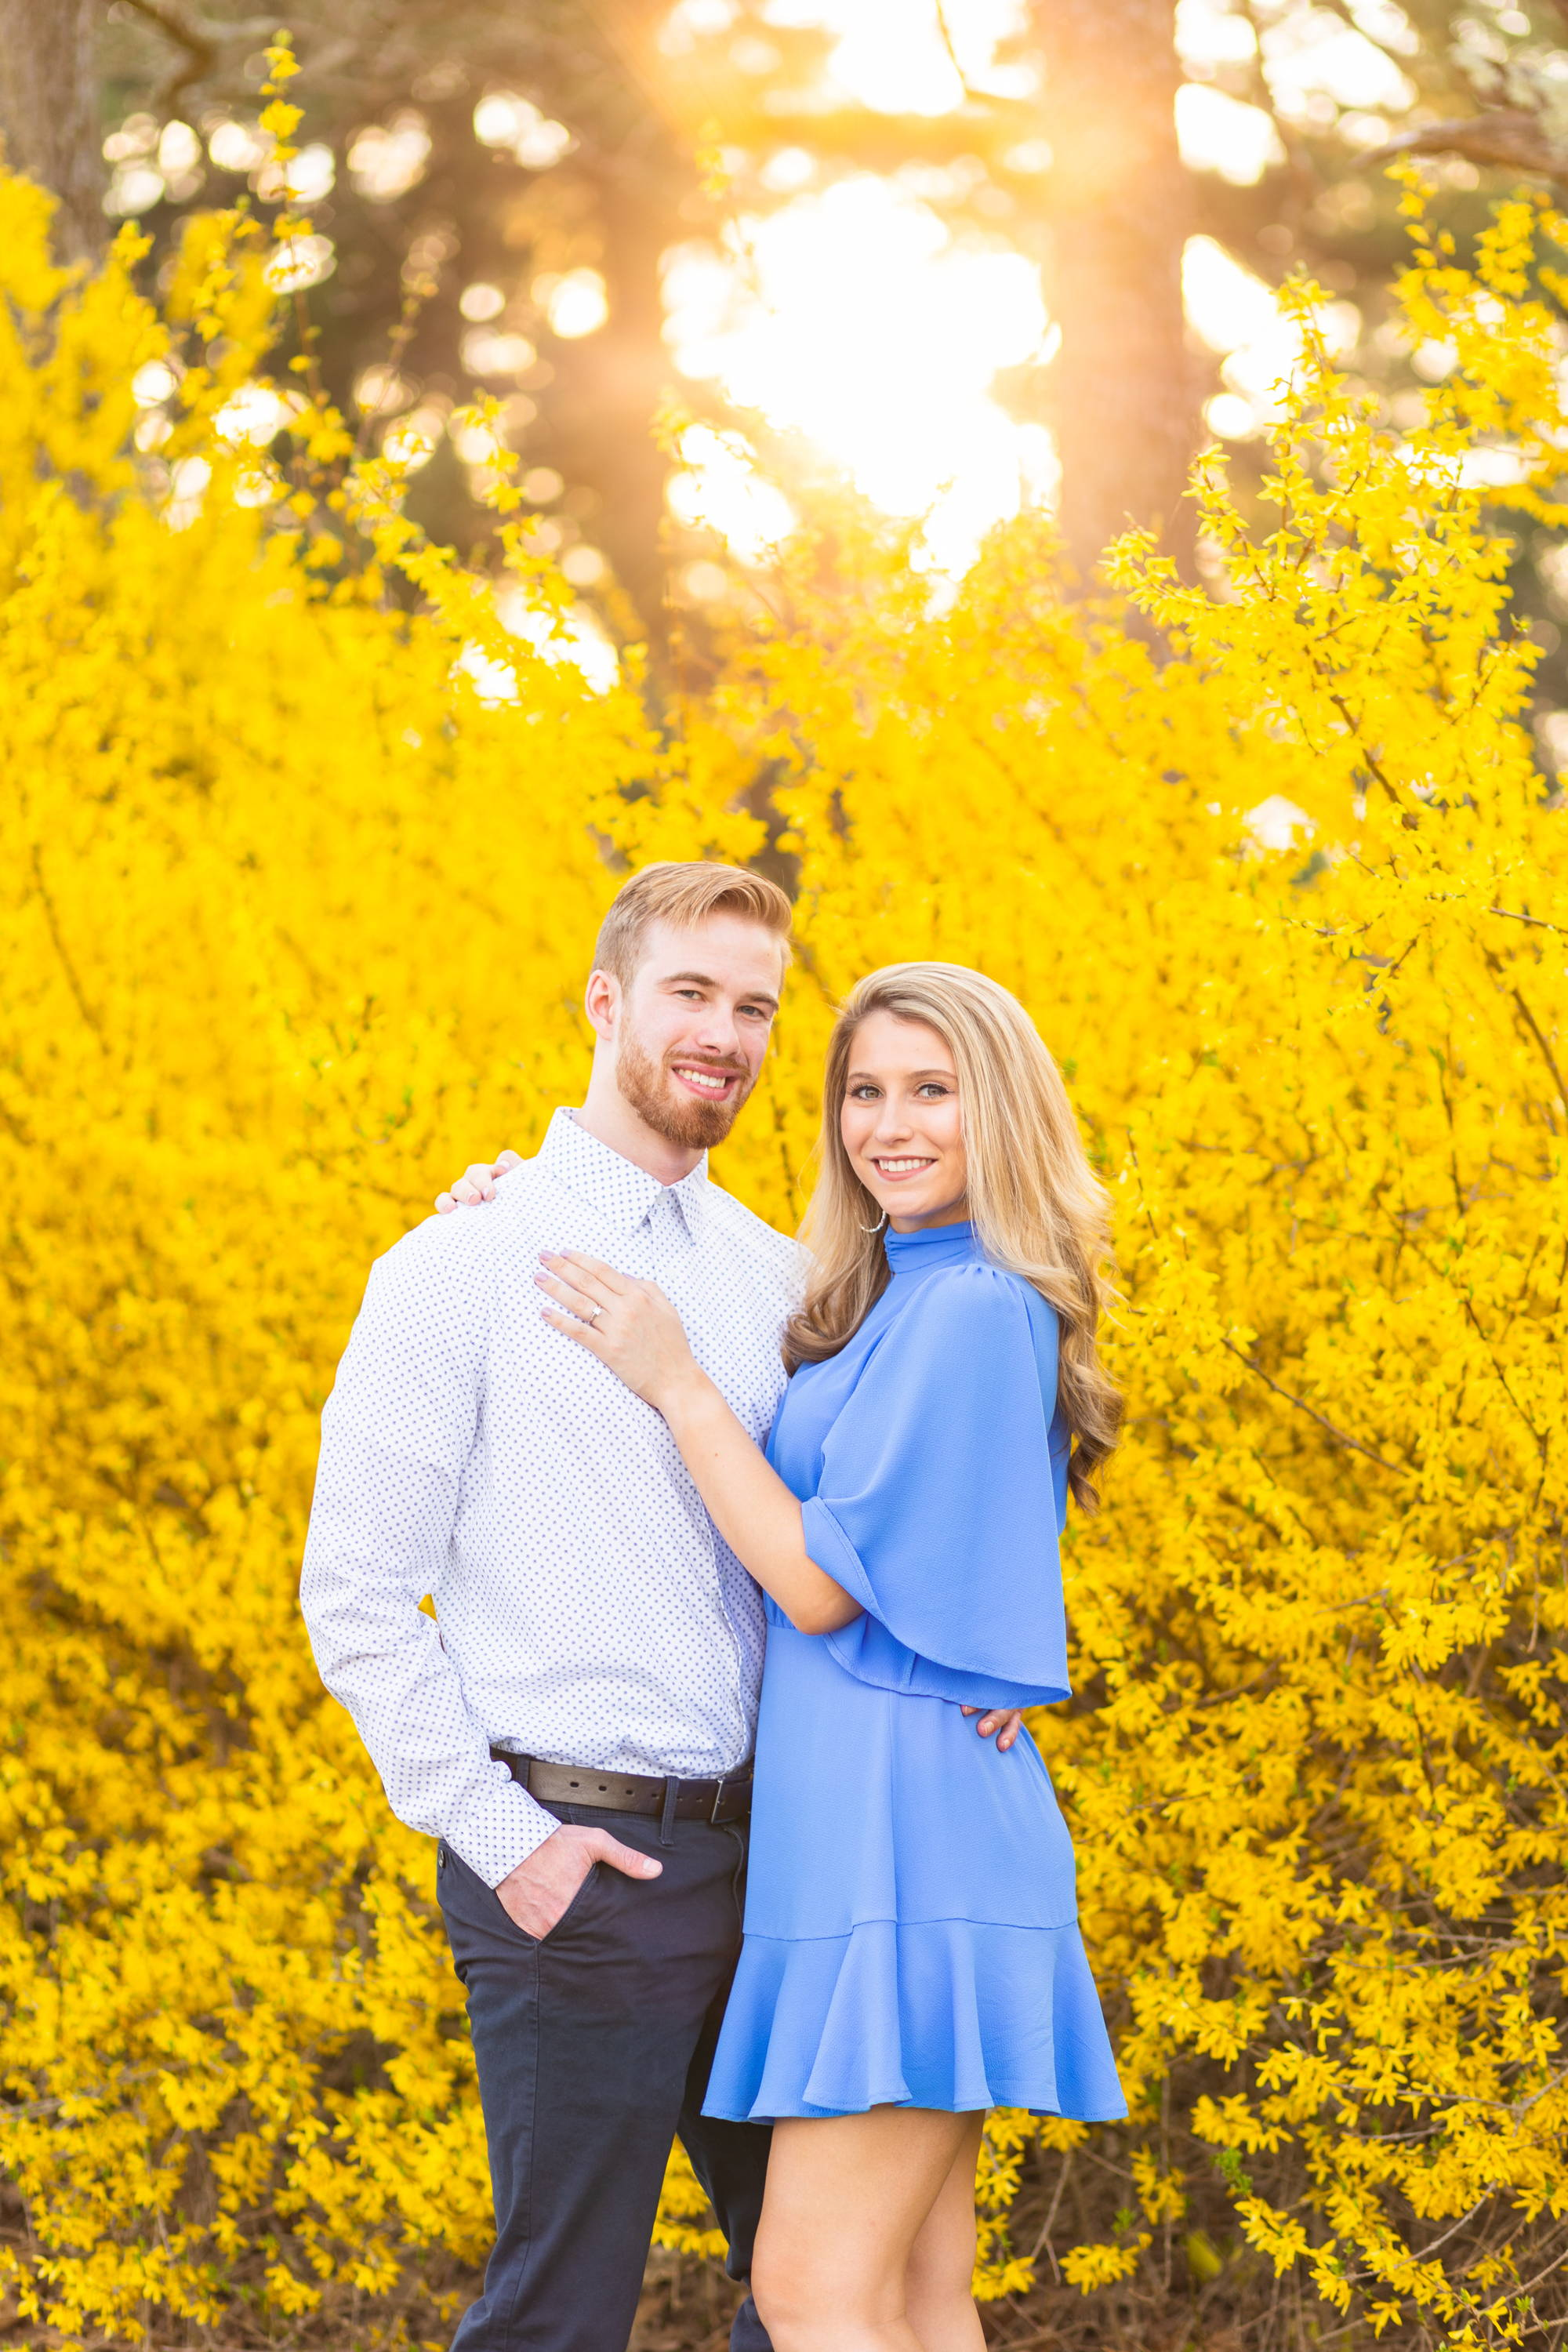 Henne Engagement Ring Couple Kyle & Alyssa Amidst a Backdrop of Yellow Flowers at Sunset